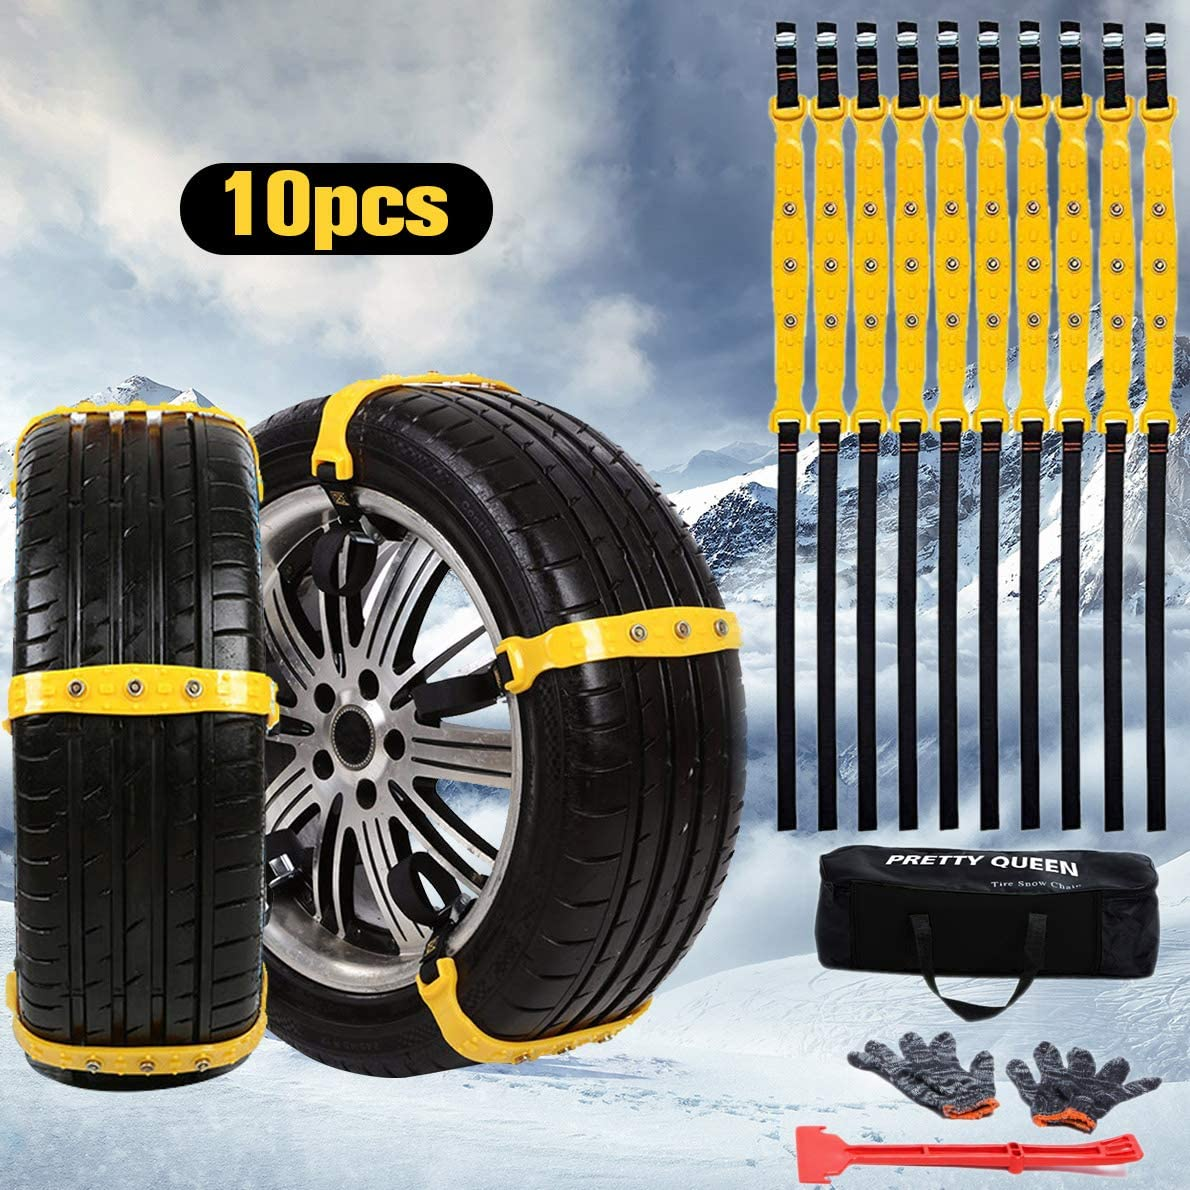 SuBleer Snow Chains for Car, Snow Chains for Tires, Tire Block Emergency Anti Slip Tire Chain for Trucks SUV Lawn Tractor 10 Pcs